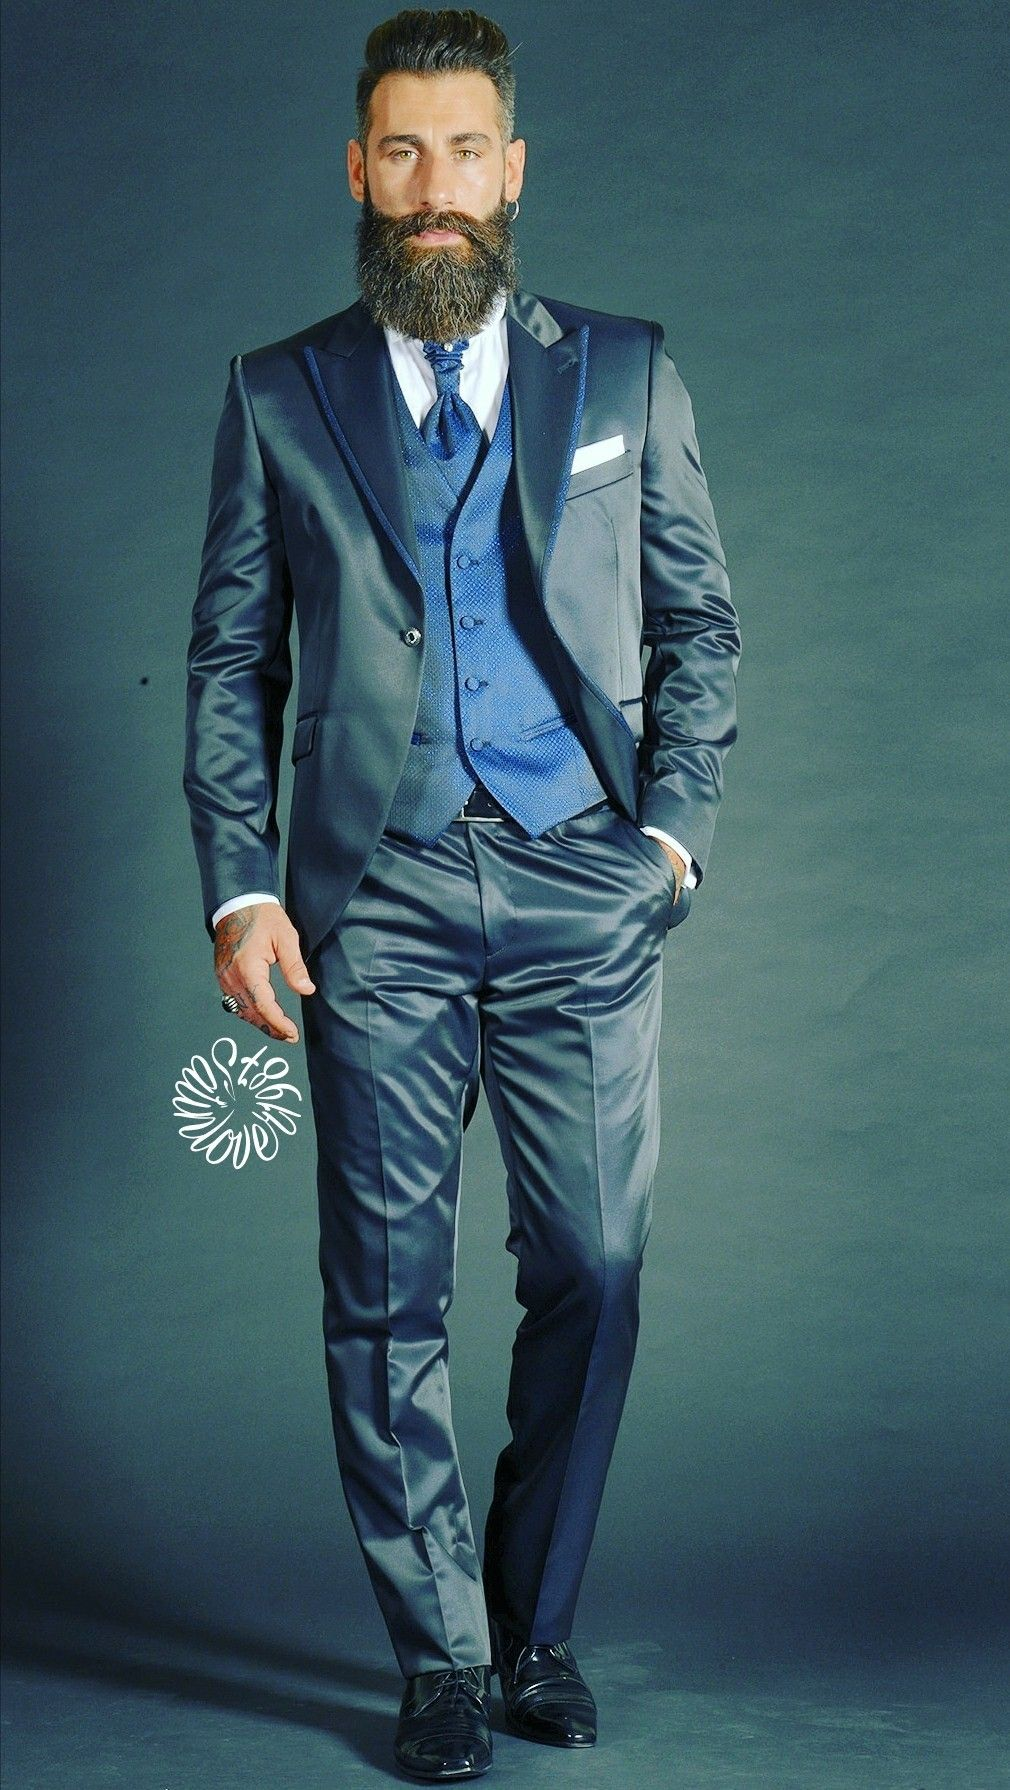 Pin by Kyo520 on Suits satin/shiny | Pinterest | Man style